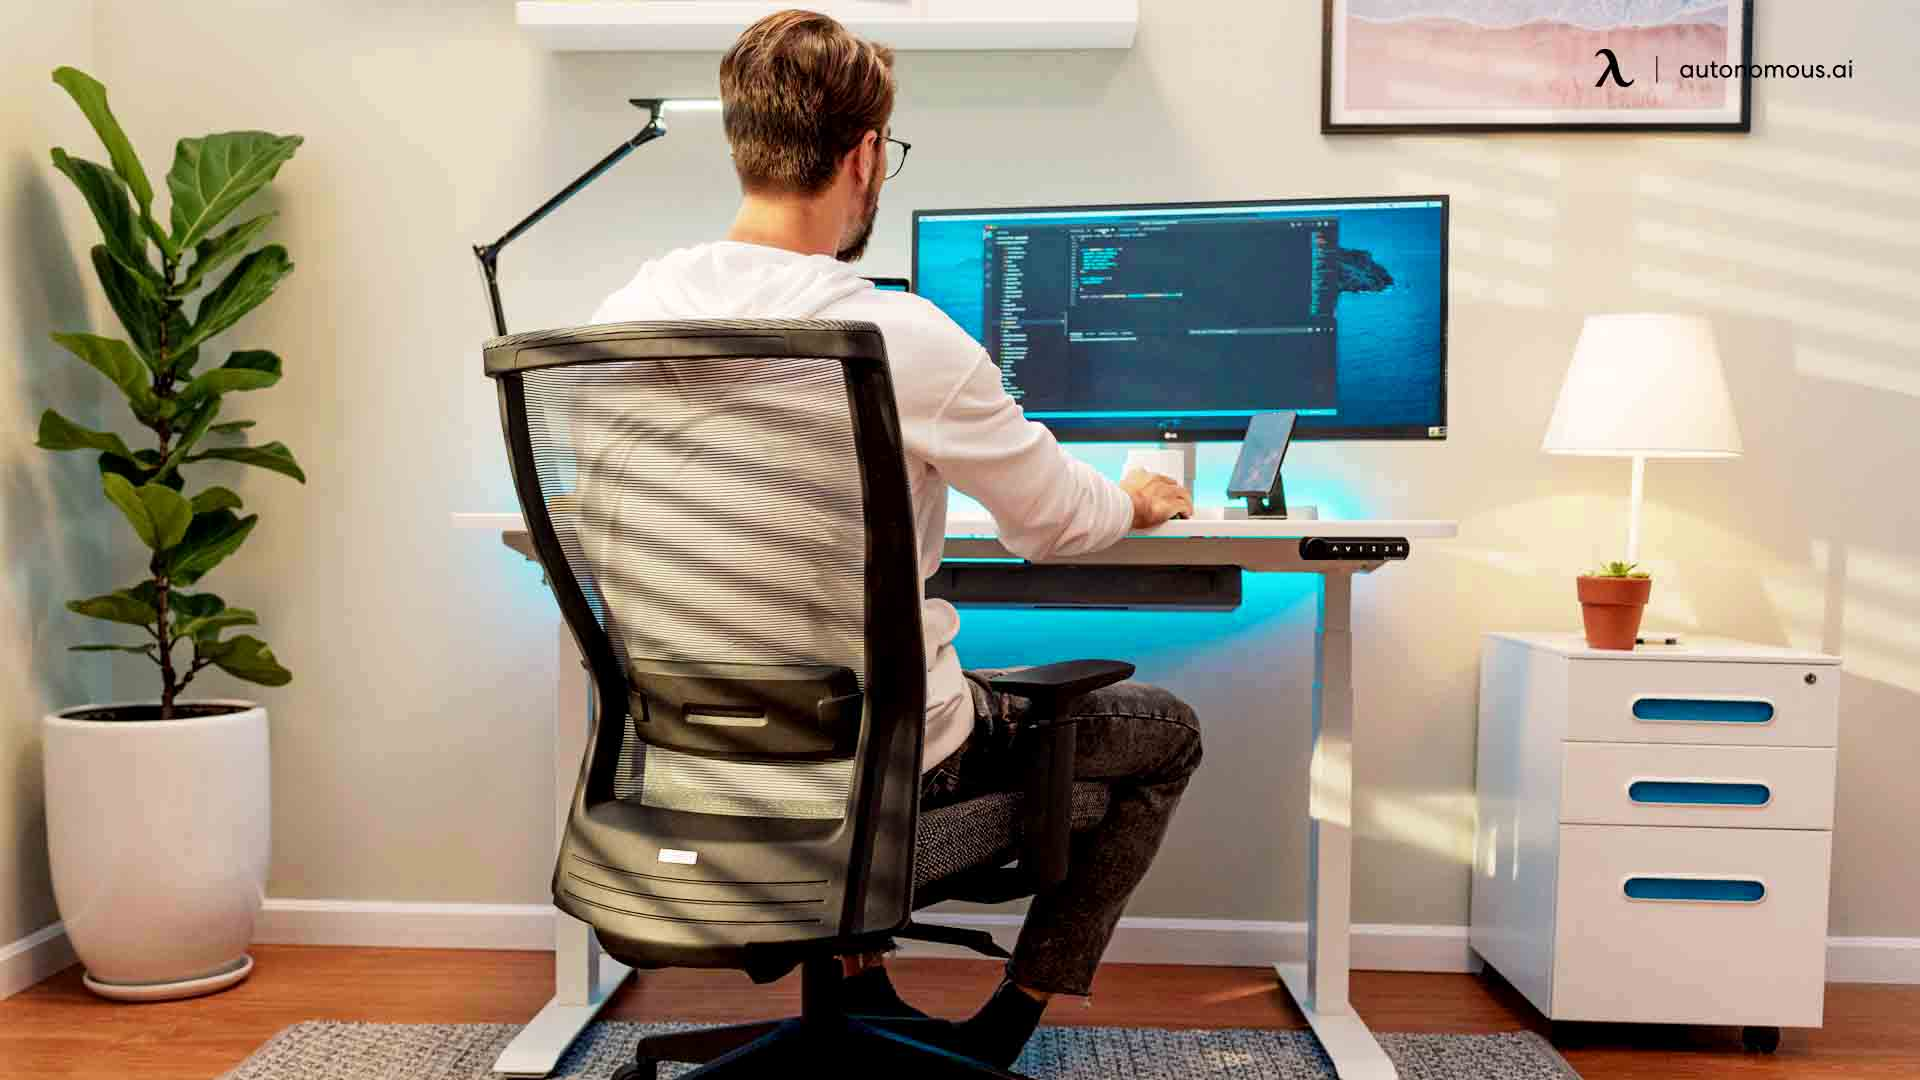 What Does 'Ergonomic' Chair Mean